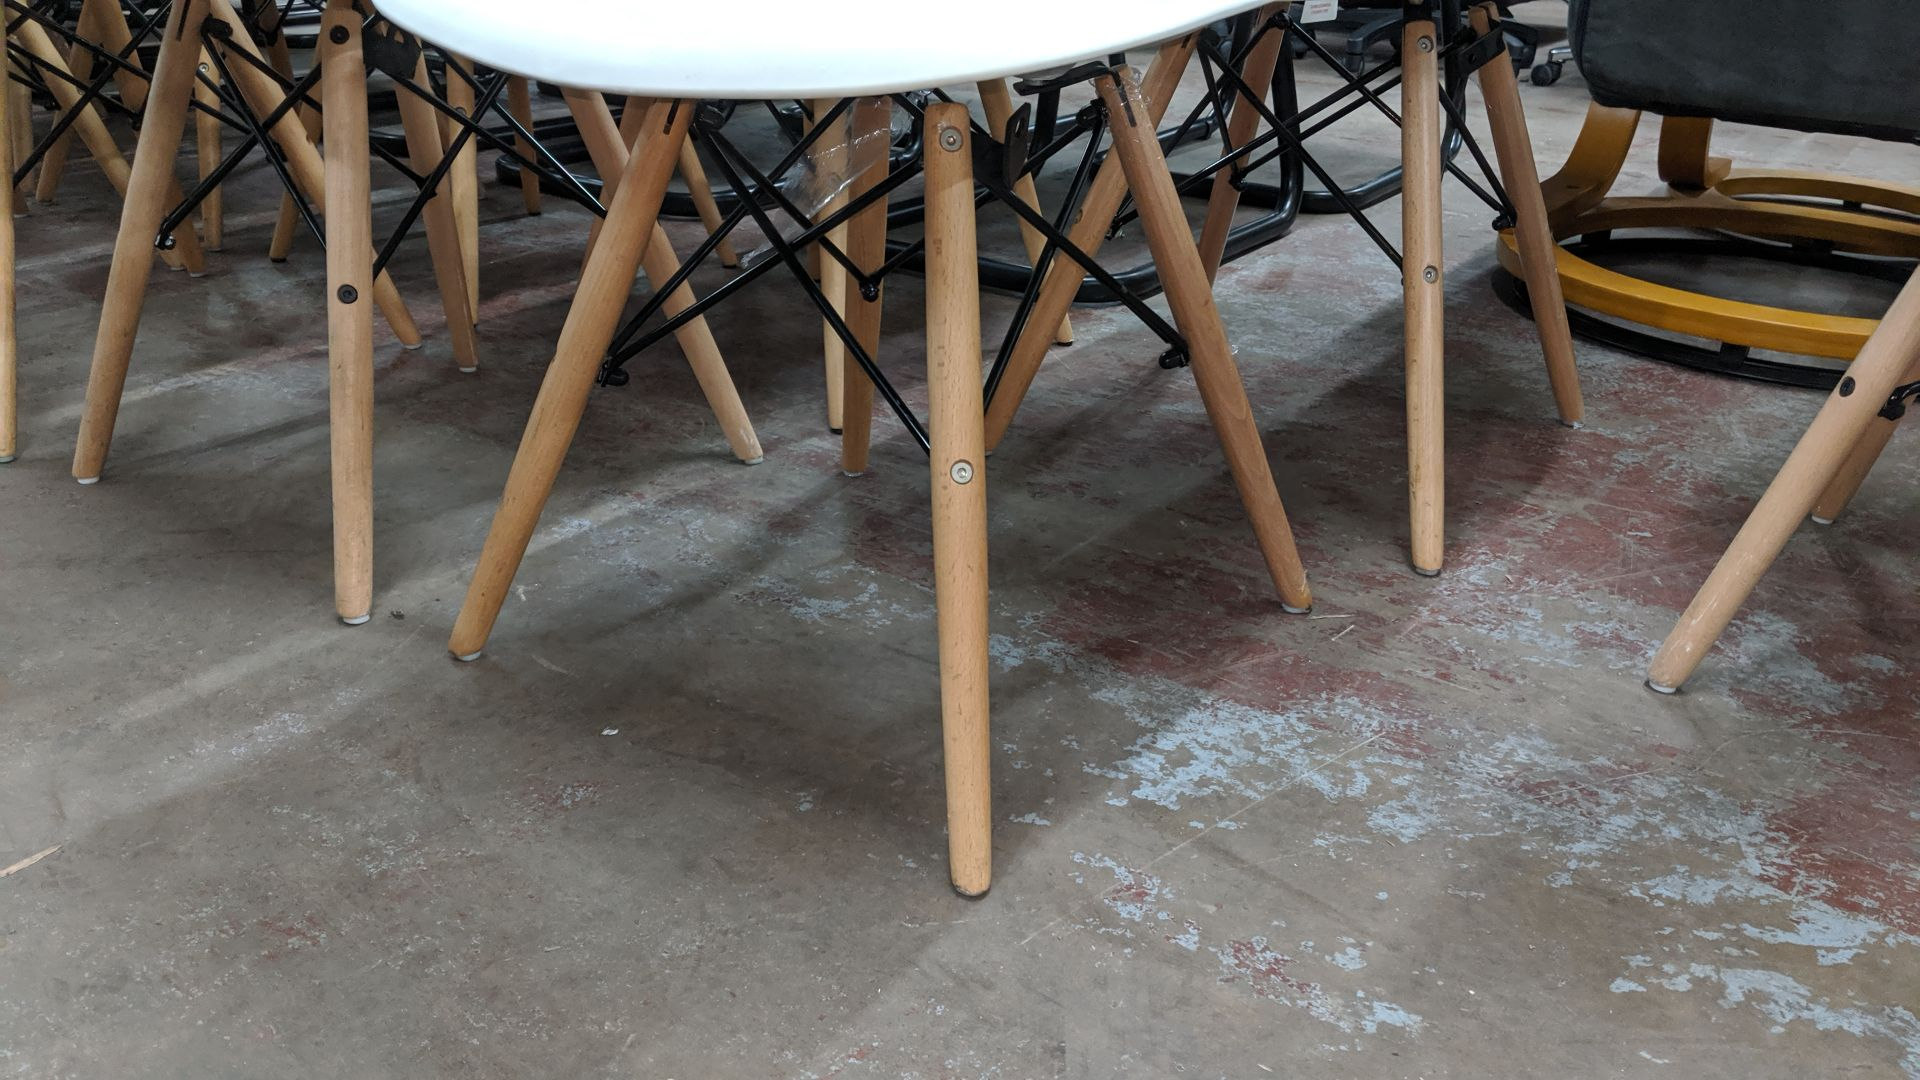 Lot 342 - 6 off white chairs with wooden legs NB. Lots 342 - 344 consist of different quantities of the same